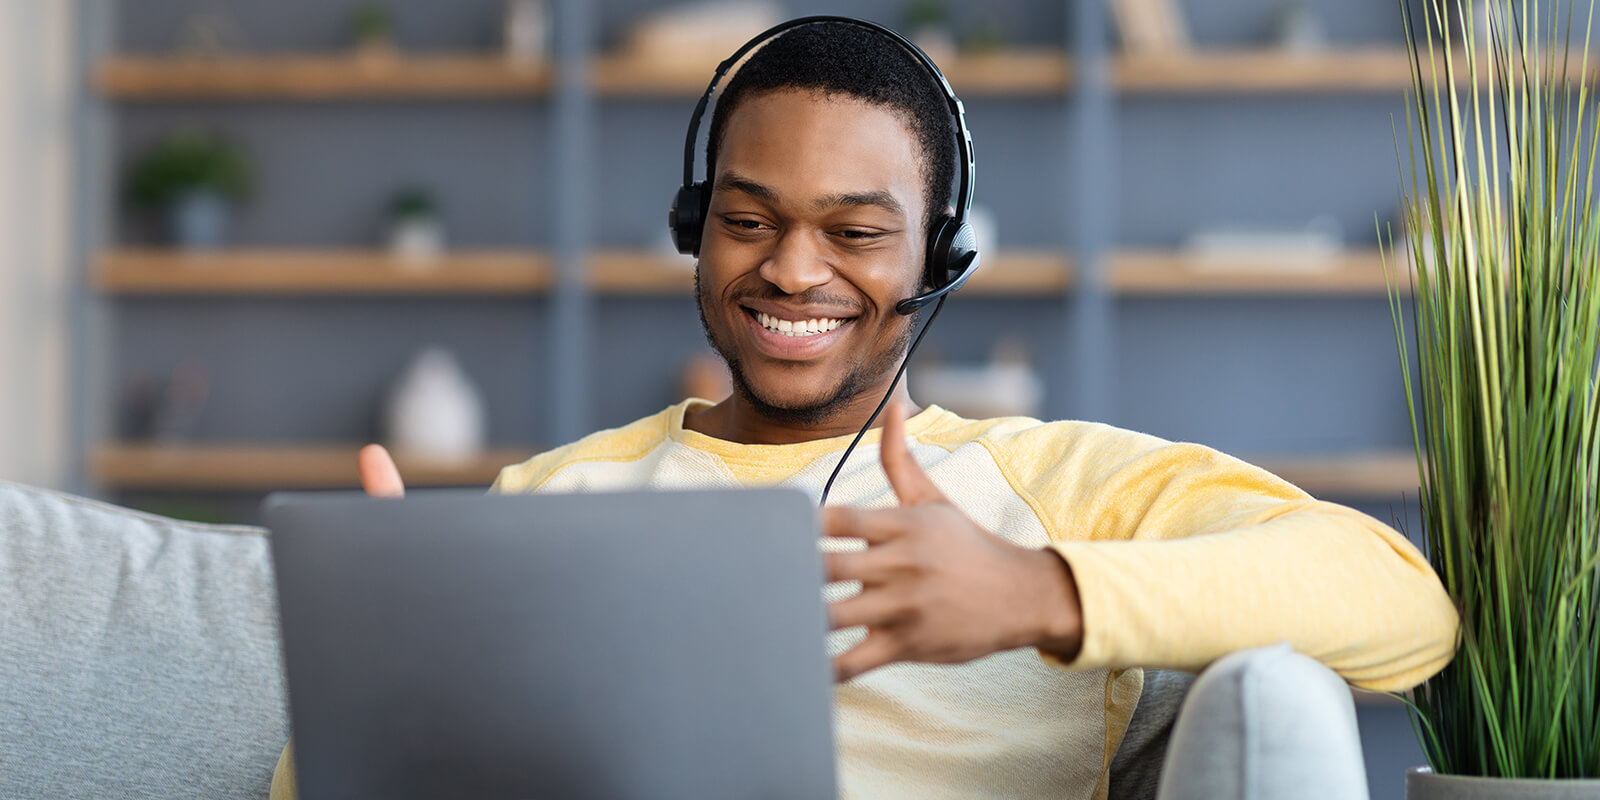 Student with headphones in front of laptop computer, engaging in conversation